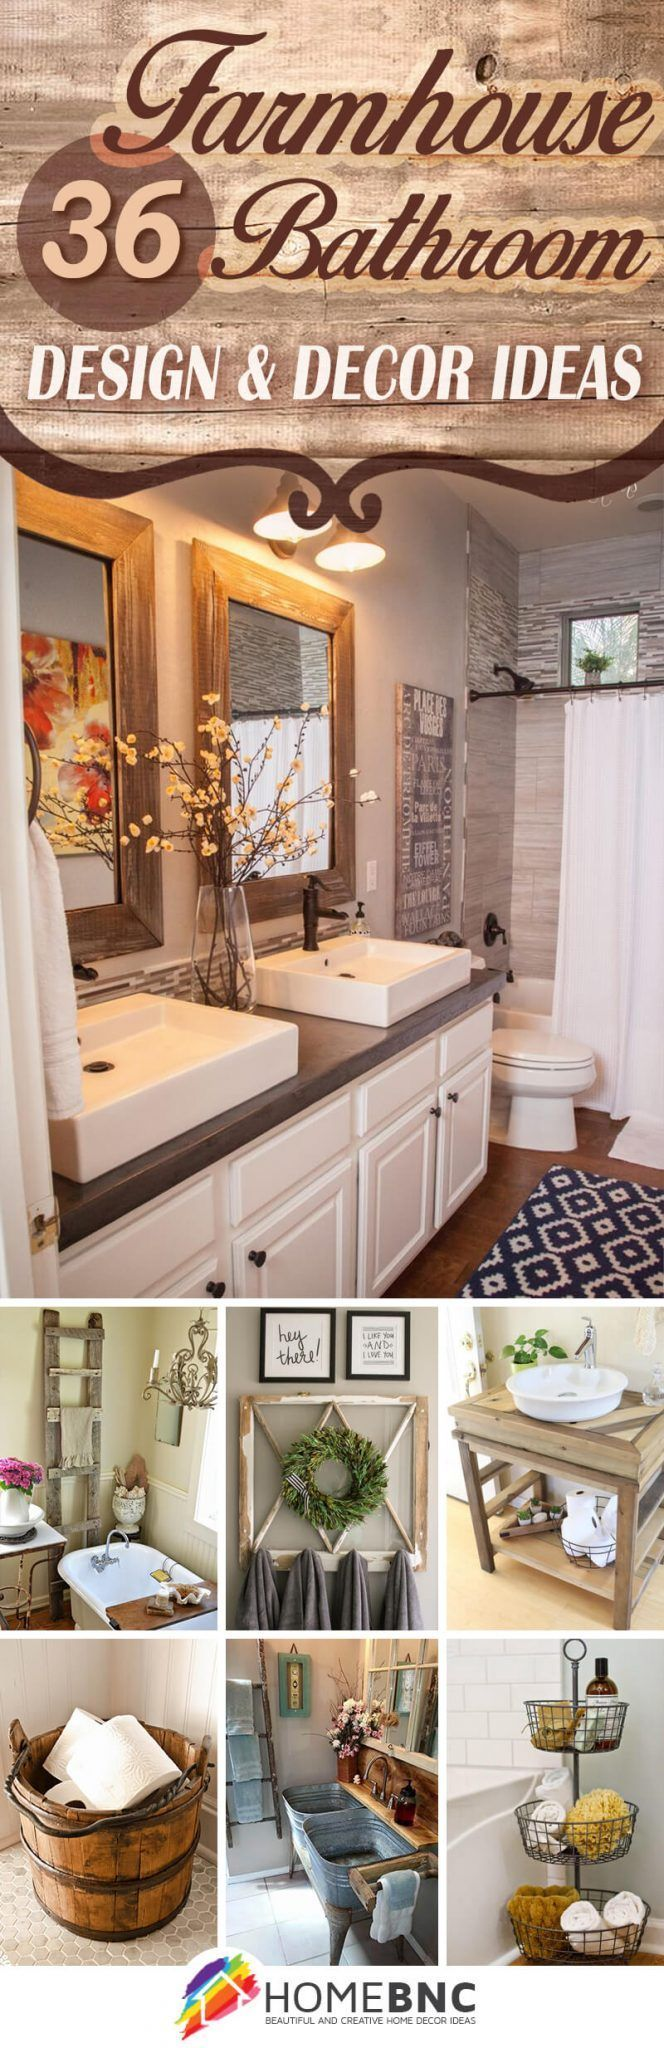 Beautiful Farmhouse Bathroom Design And Decor Ideas You Will Go Crazy For